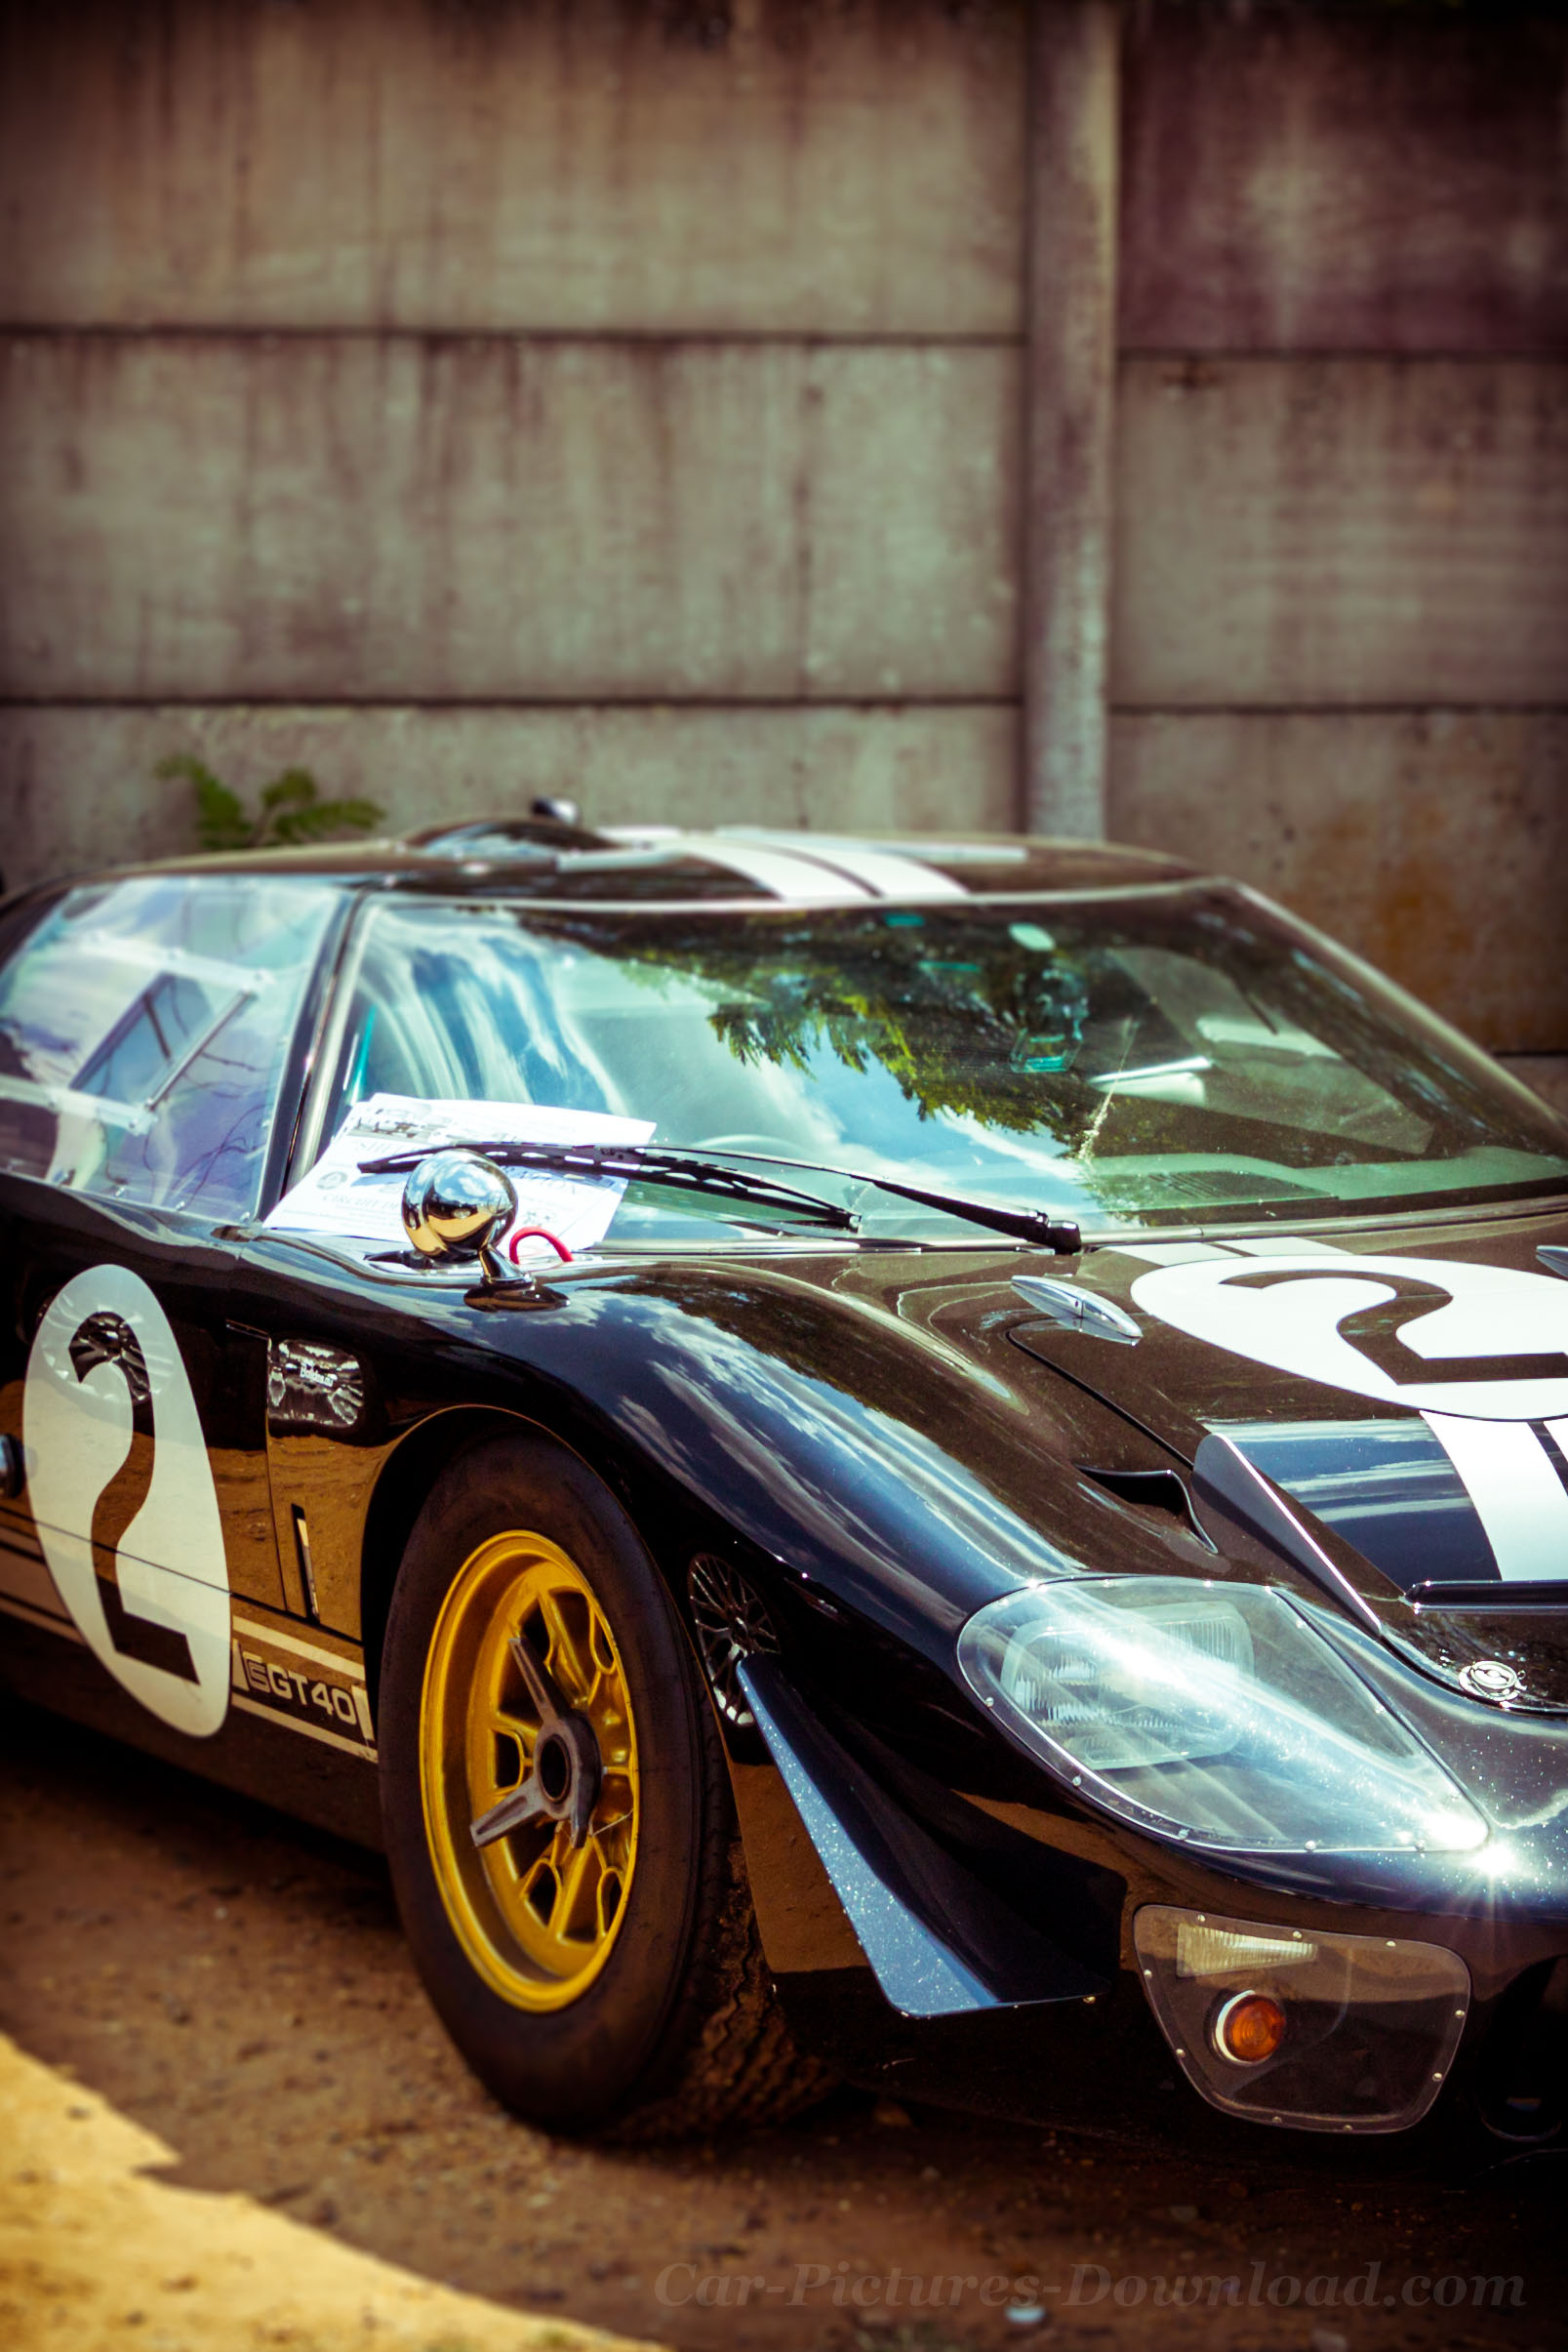 Black Old Ford Gt 40 Car Wallpaper Hd Iphone Ford Gt40 Mk2 Wallpaper Iphone 1607x2410 Download Hd Wallpaper Wallpapertip